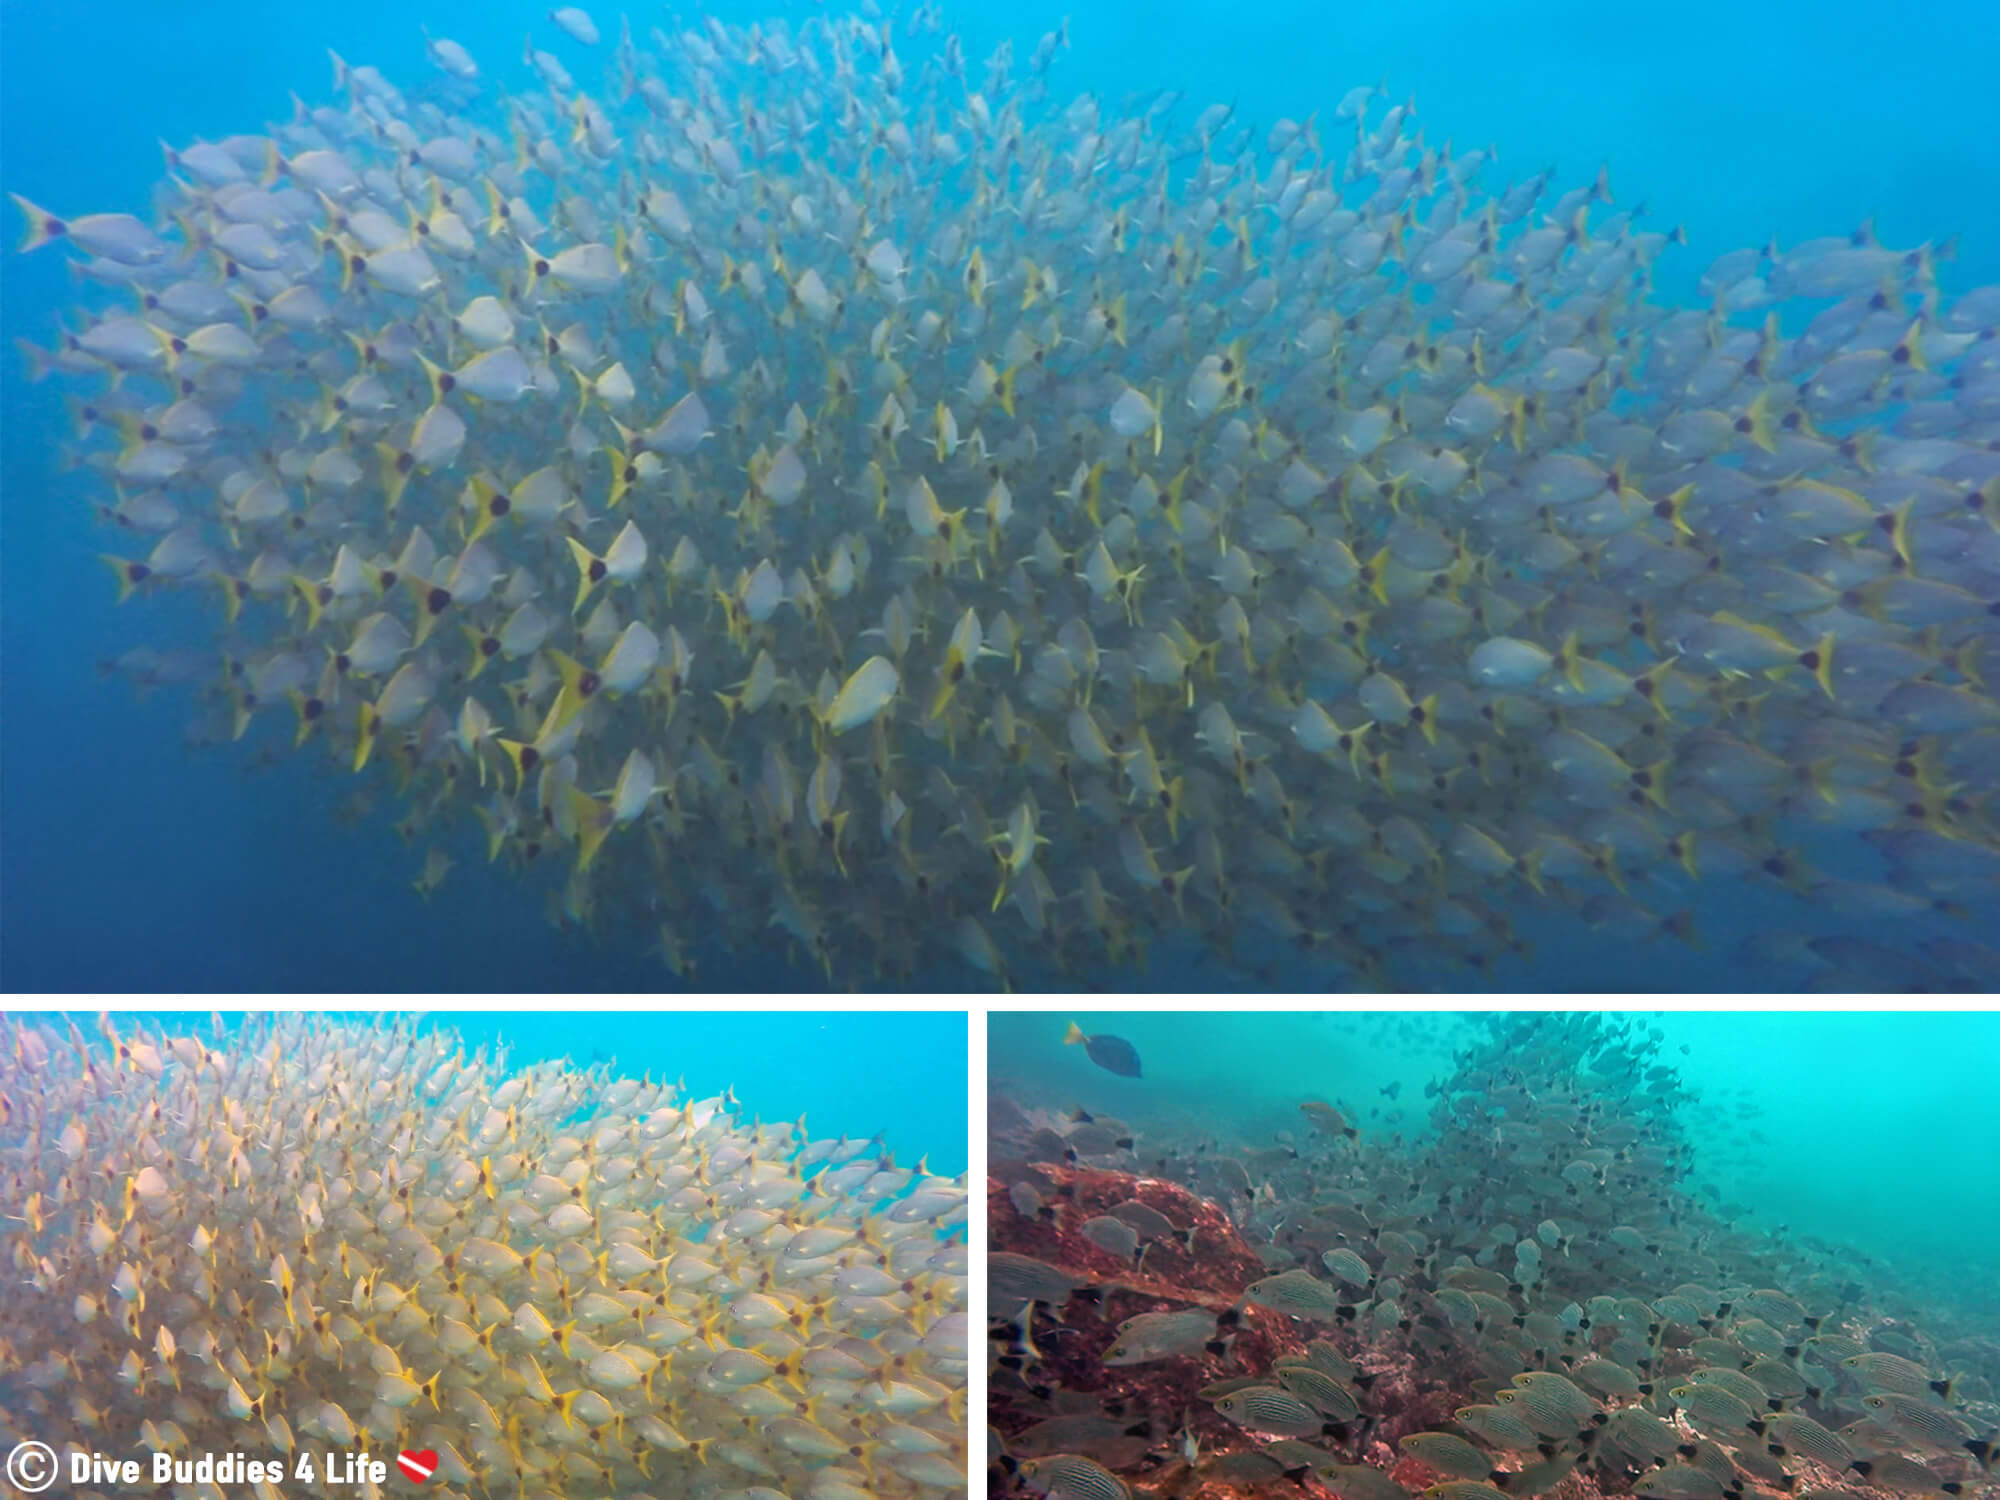 Mosaic Of The Large School Of Fish Seen Scuba Diving At The Catalina Islands, Costa Rica